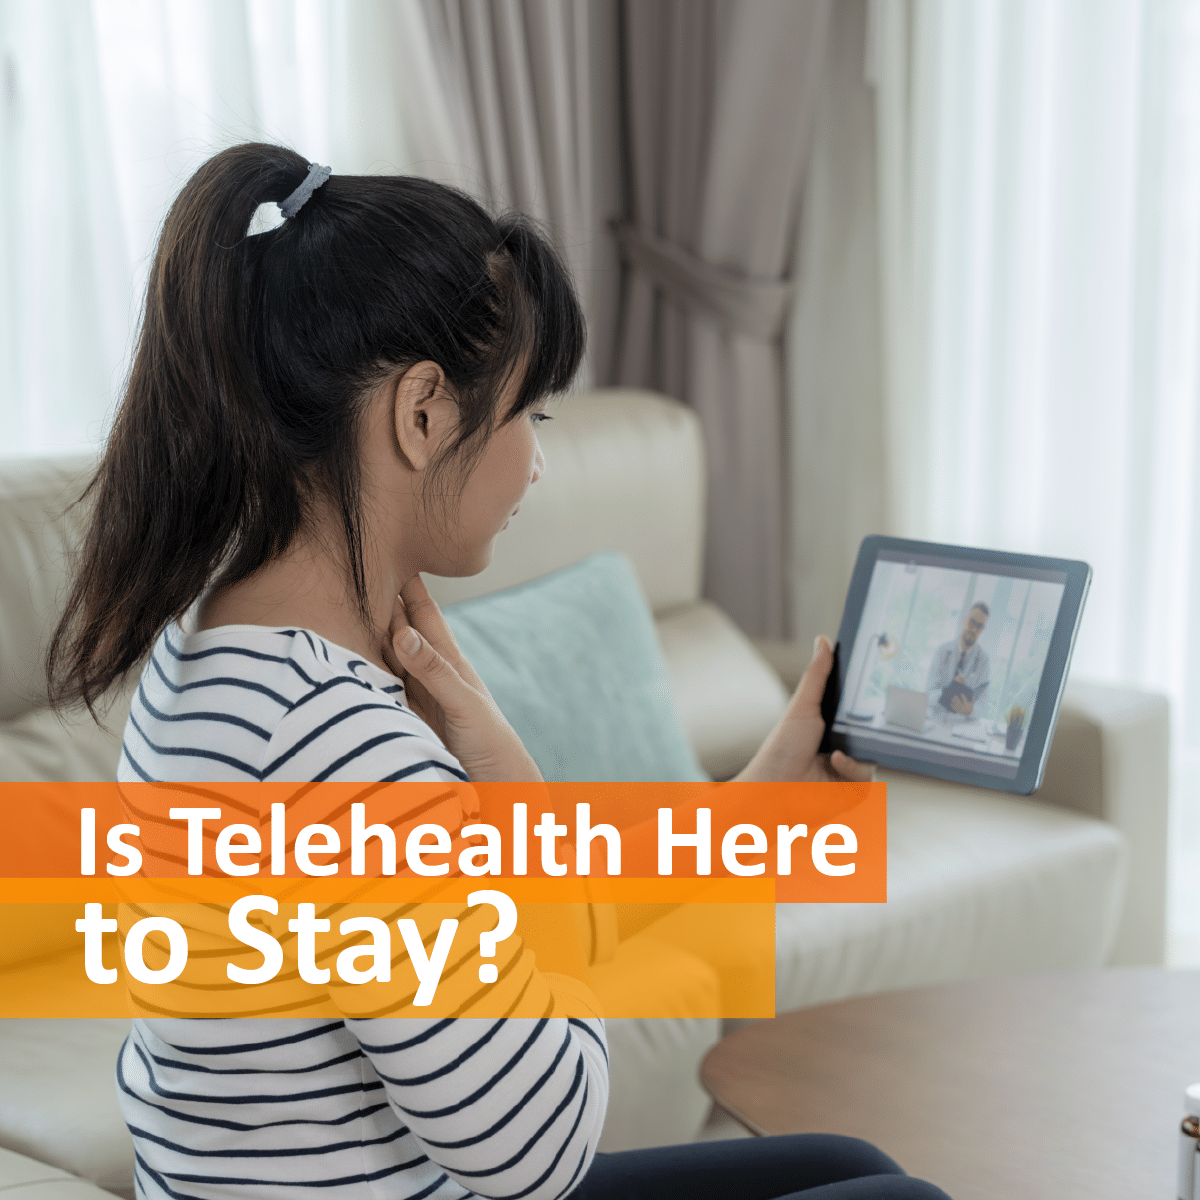 Is Telehealth Here to Stay?